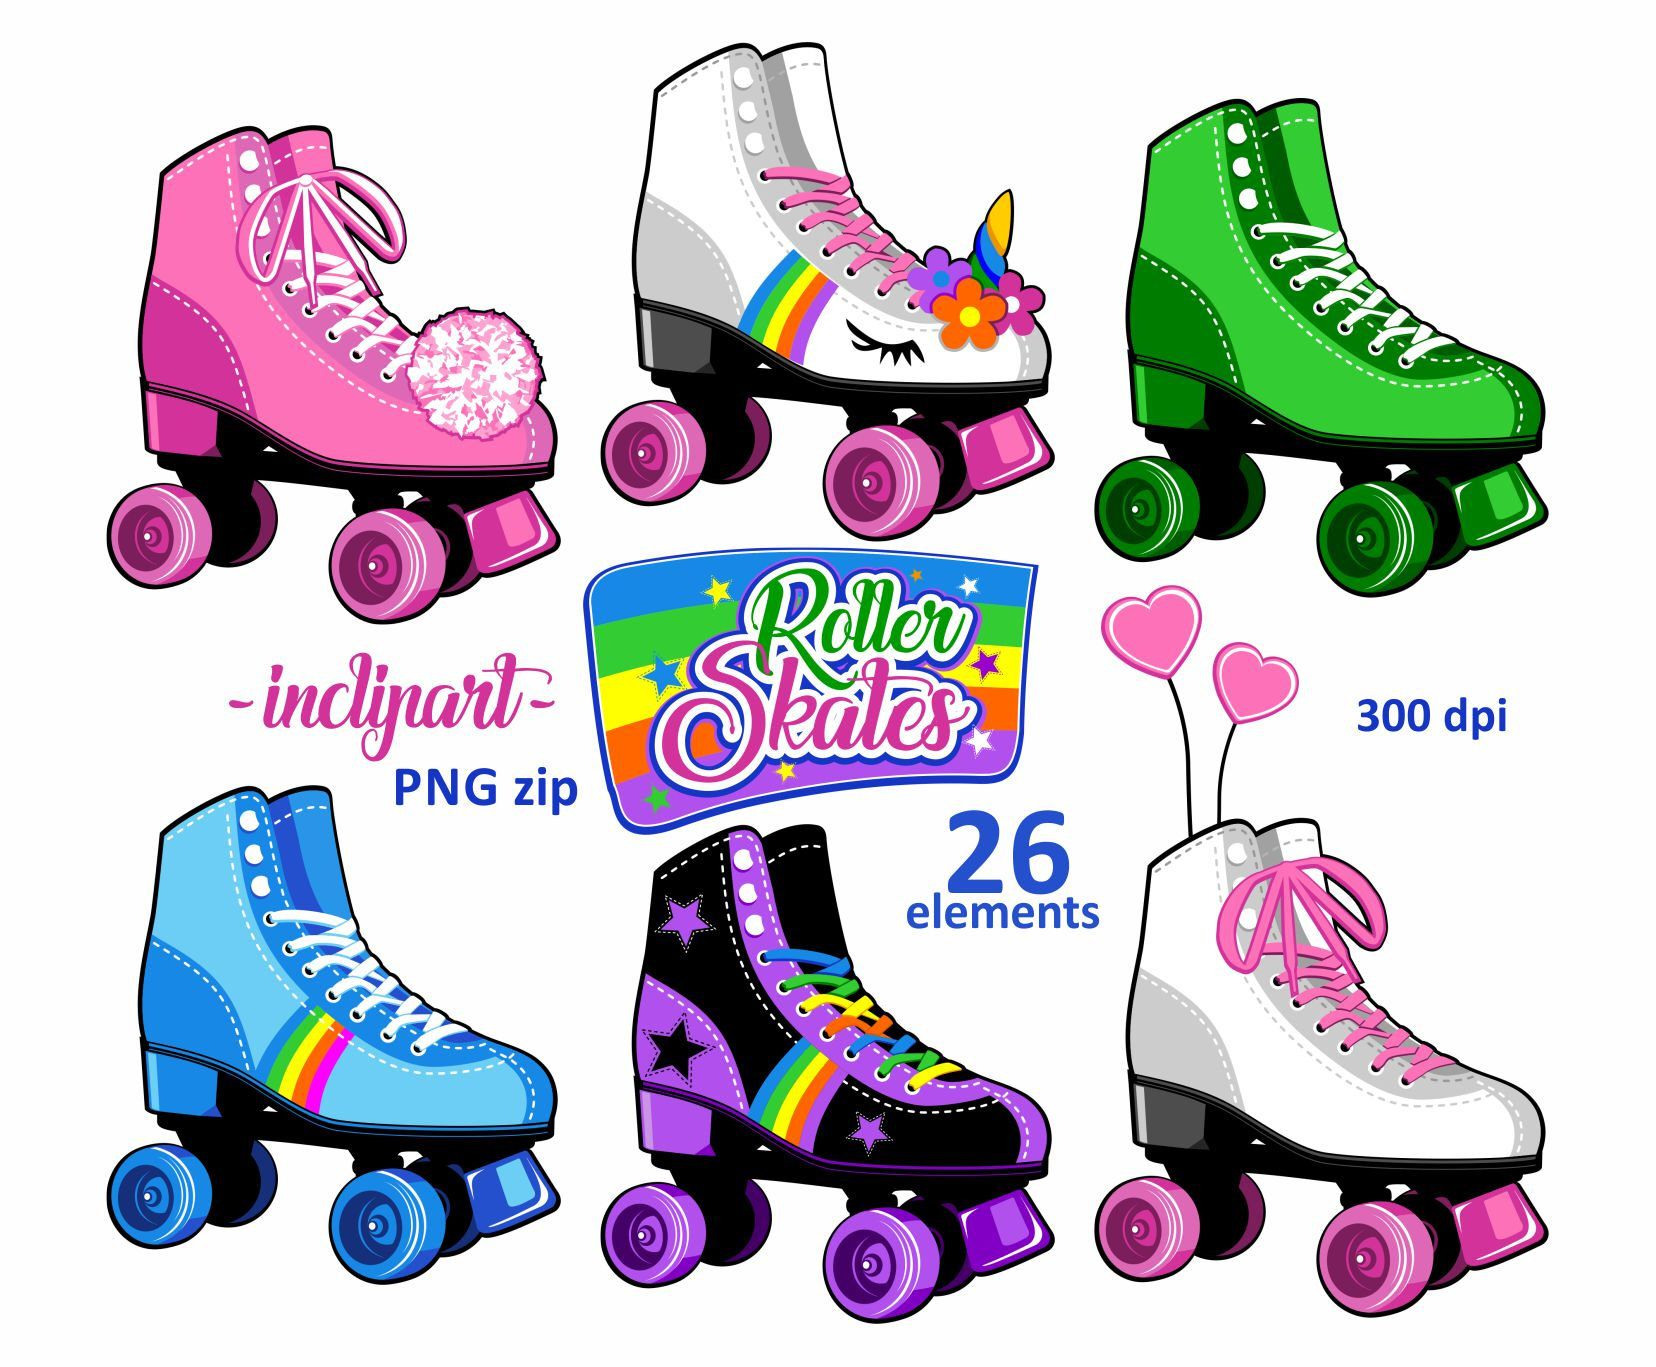 Roller skates clipart. Party clipart. Colorful Roller skate.